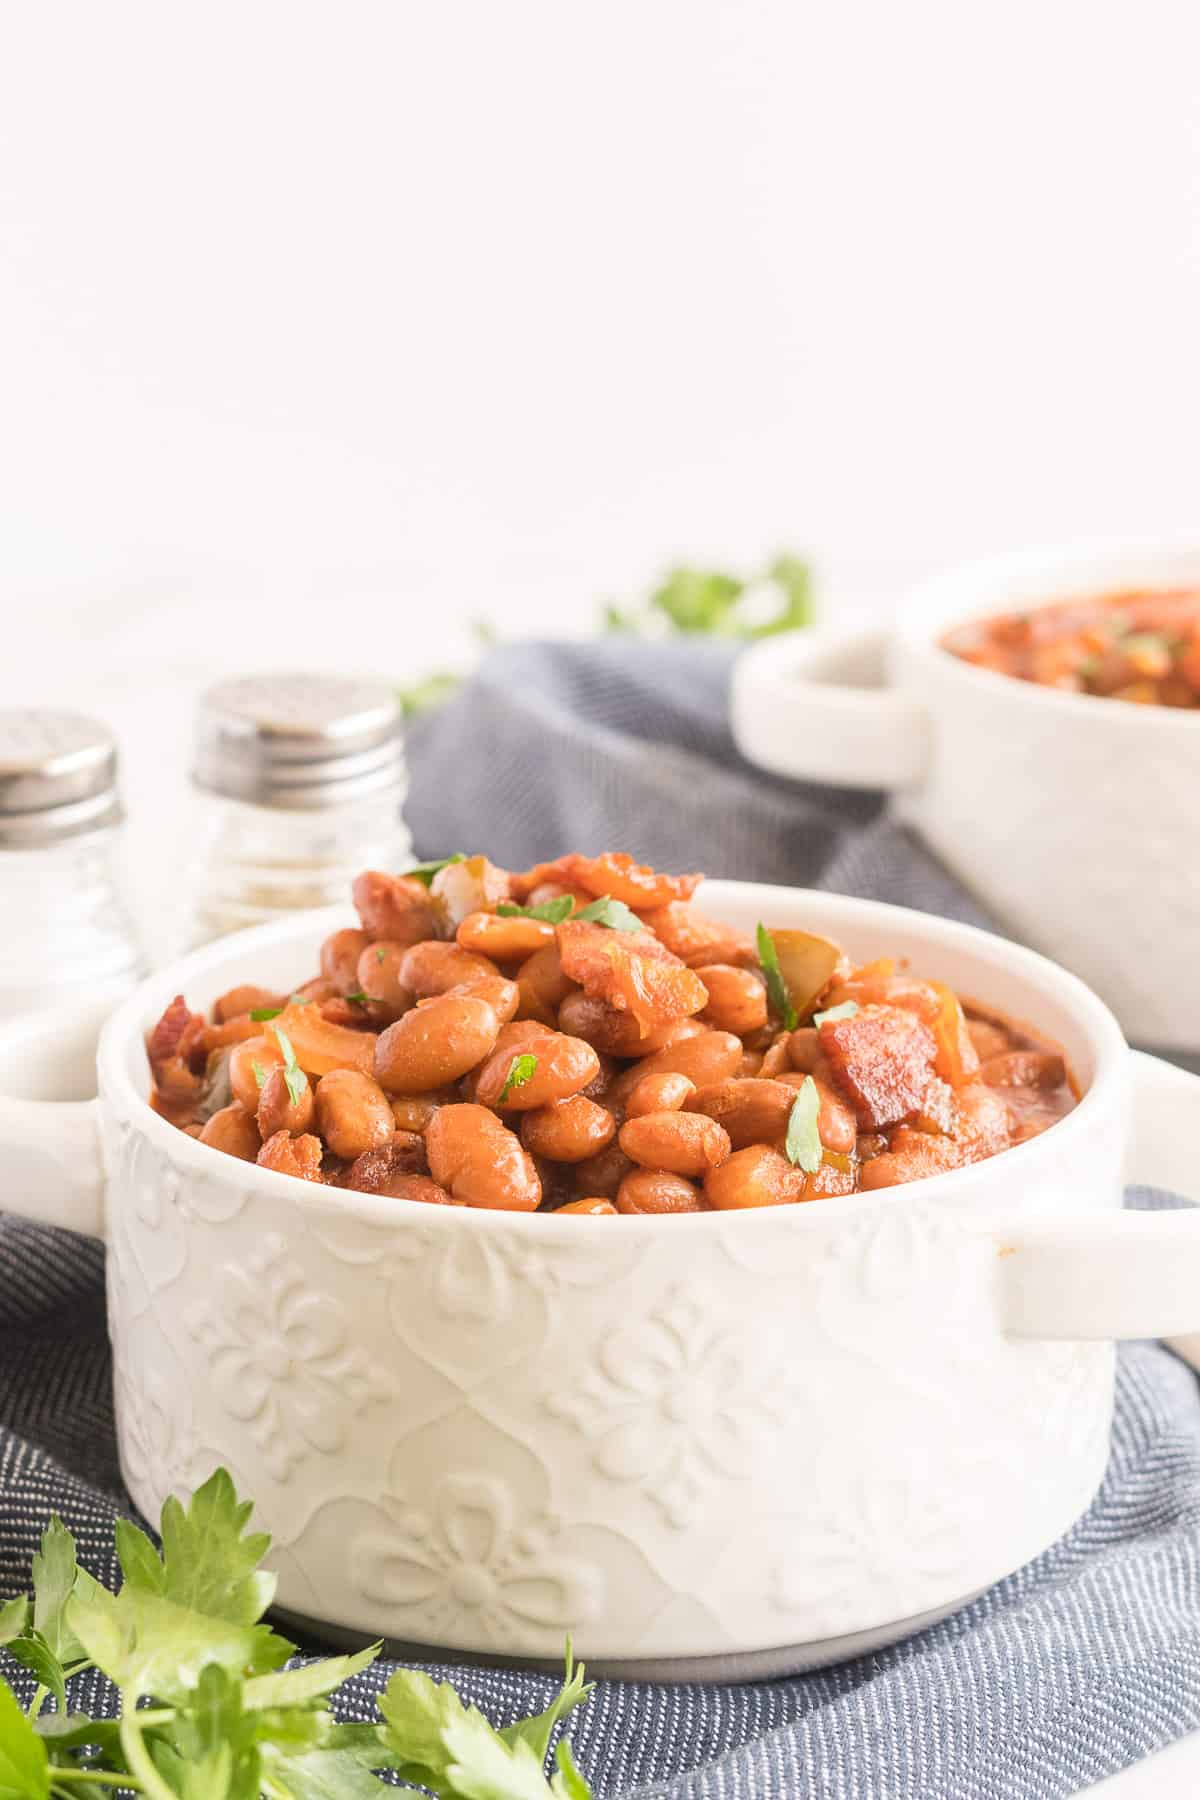 Baked Beans in a white serving dish with a blue cloth underneath.